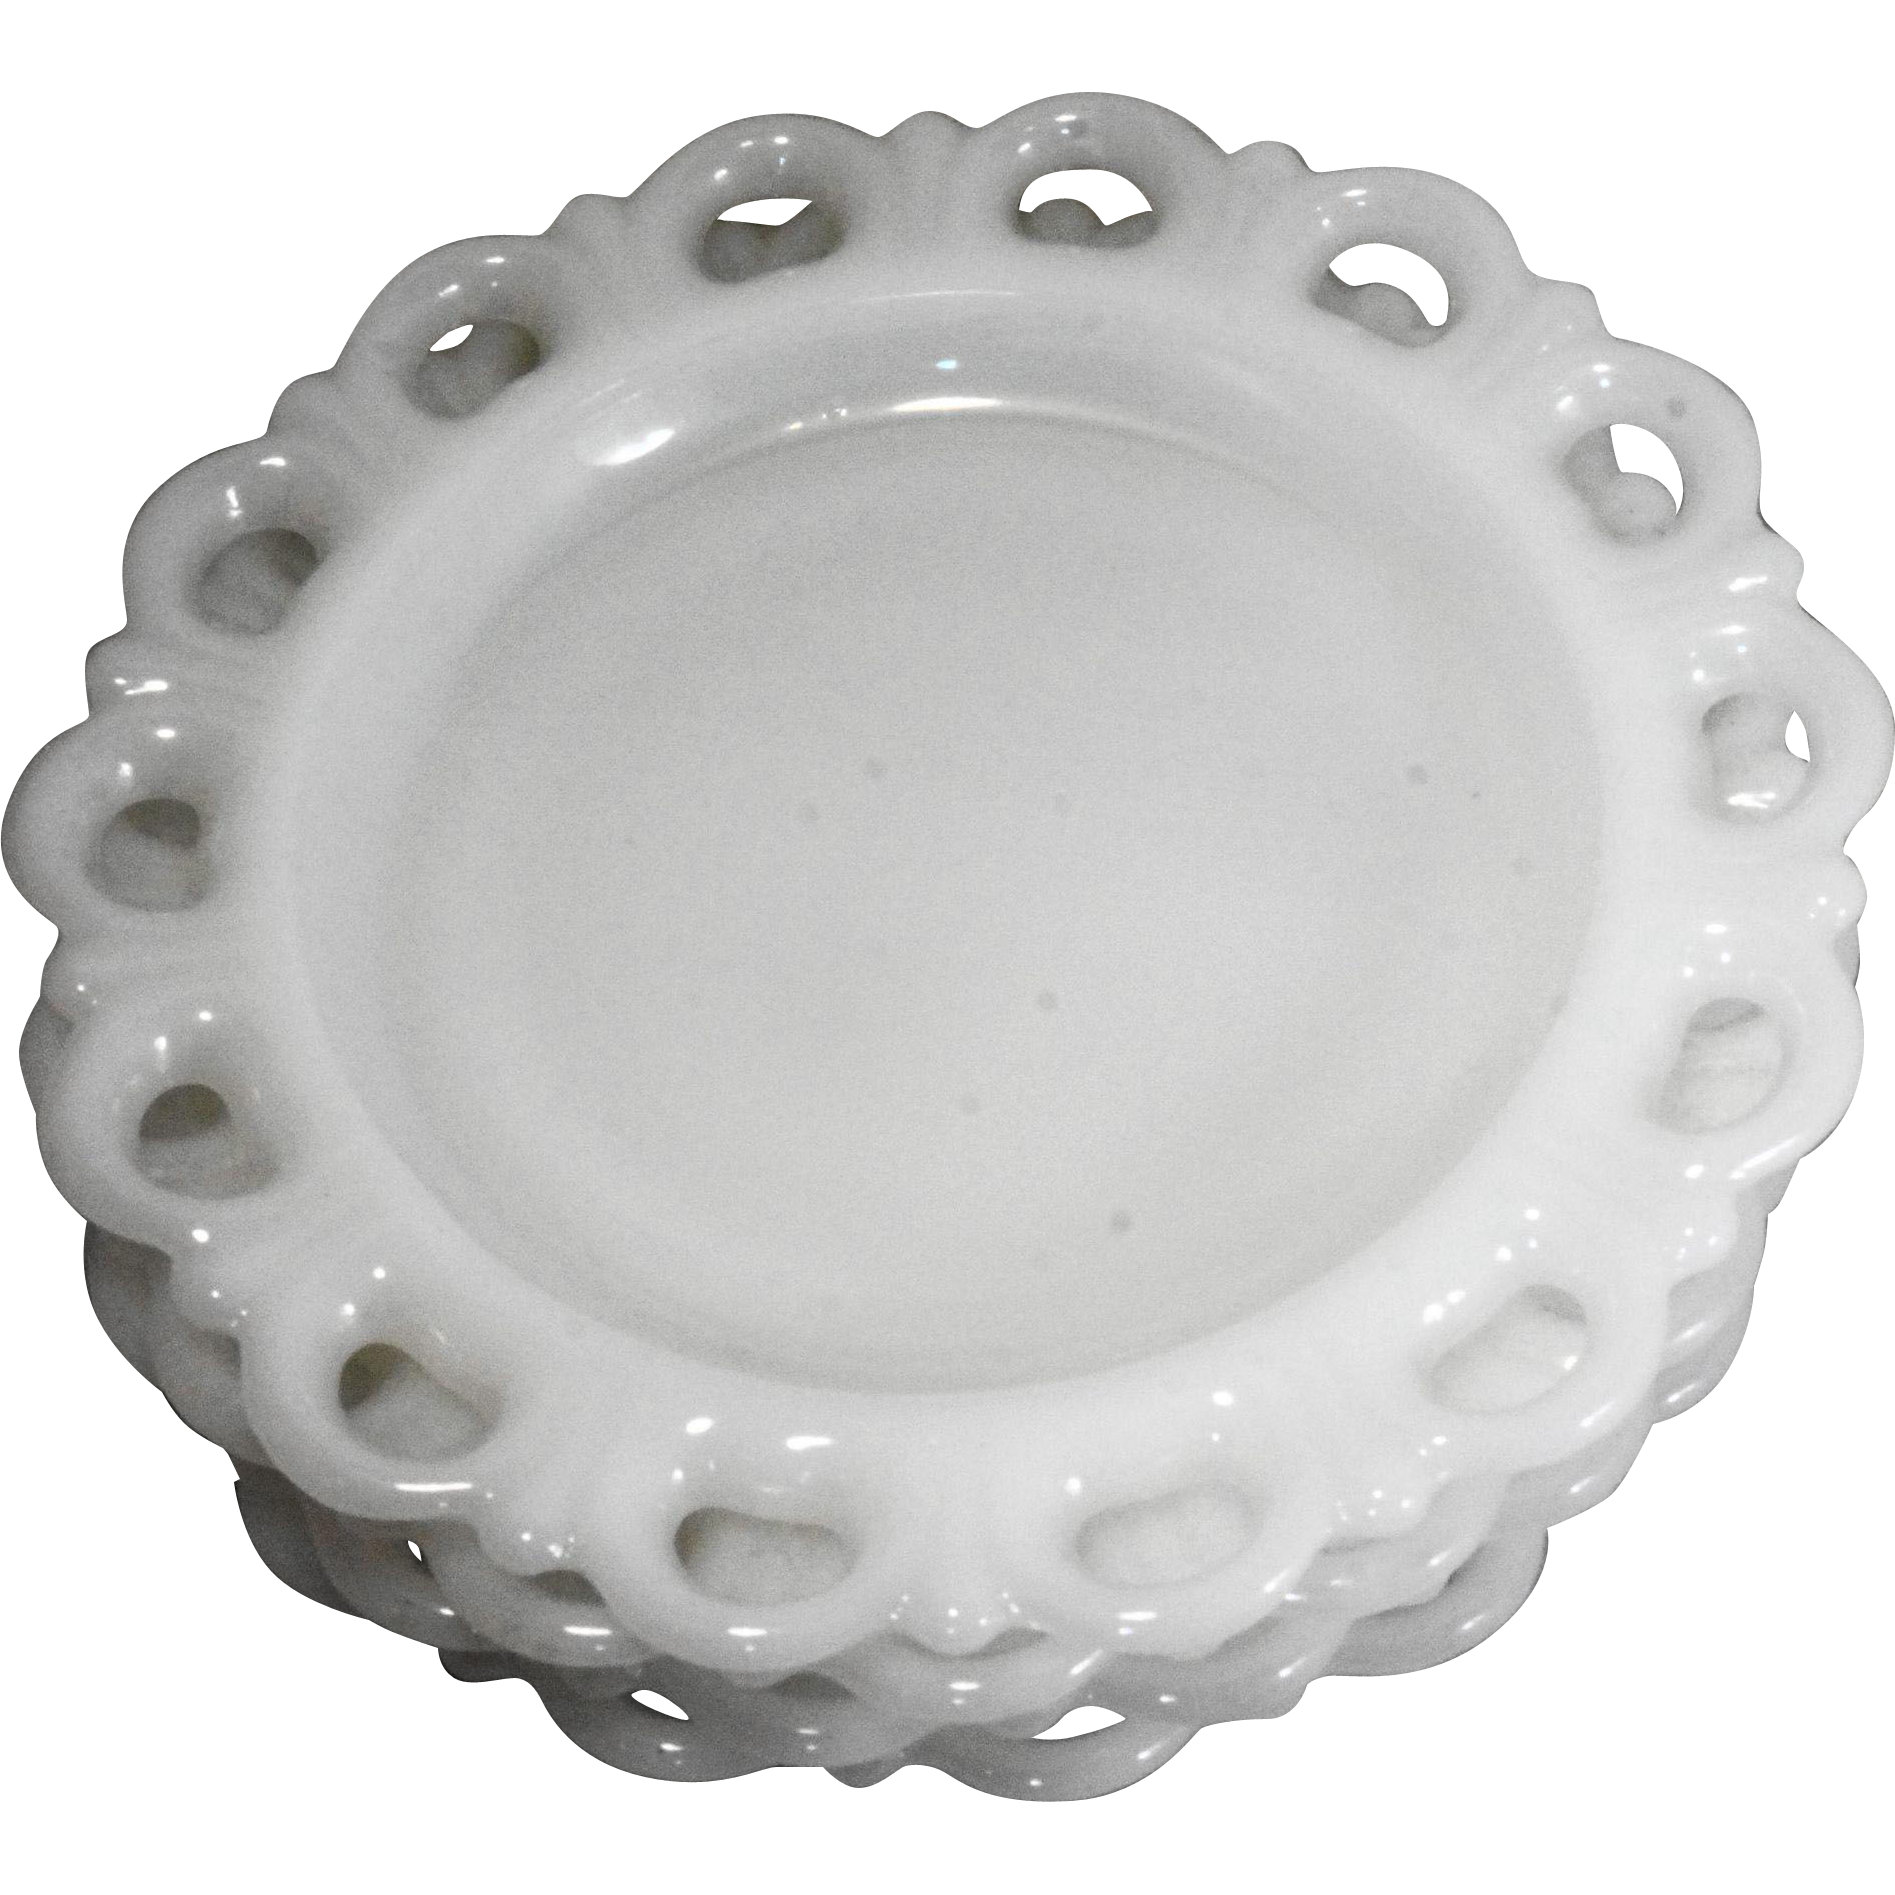 Lace Edge White Milk Glass Anchor Hocking Salad Plates Set of 4